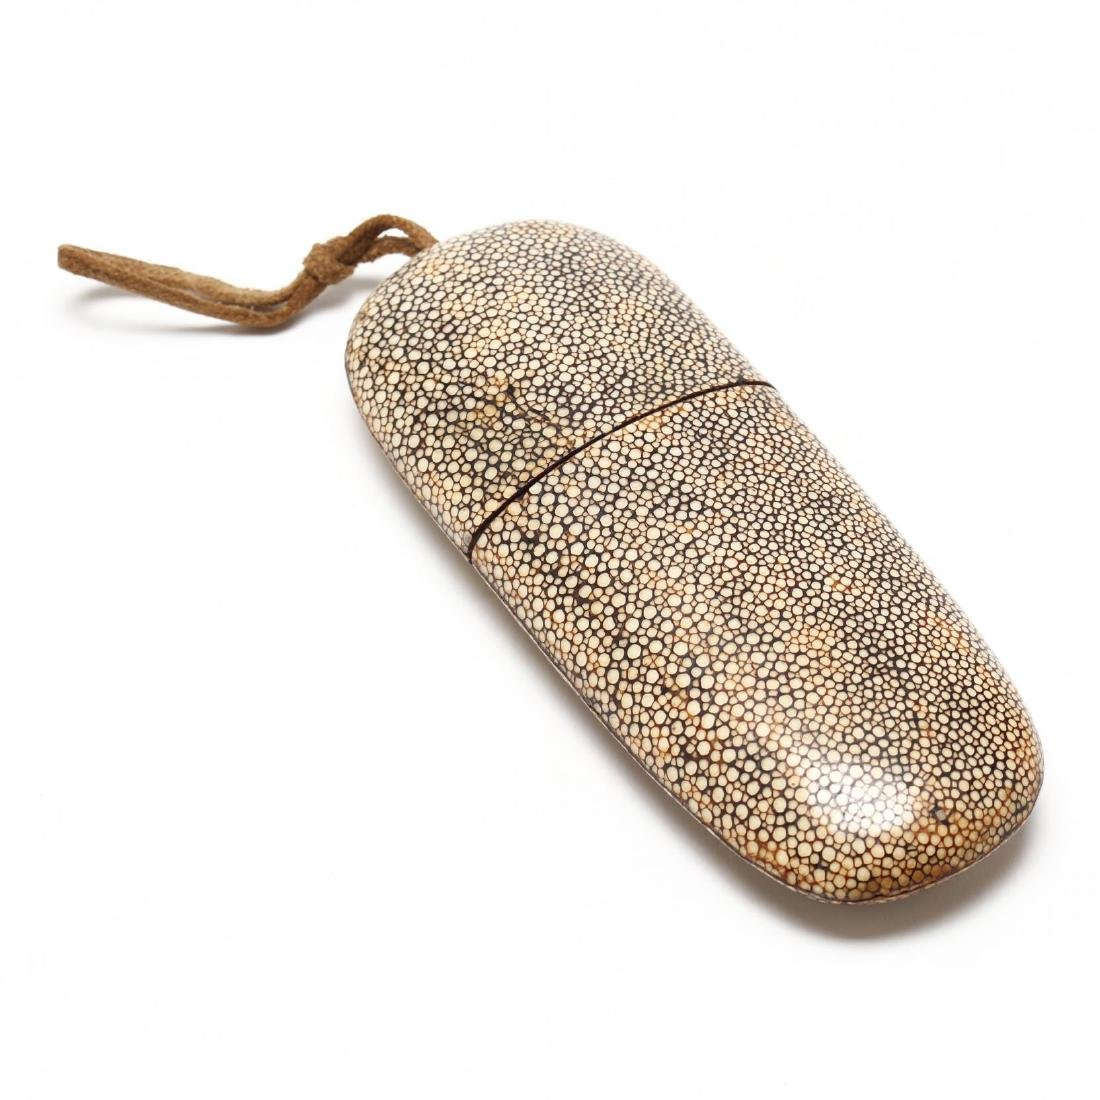 Antique Shagreen Eyeglass Case